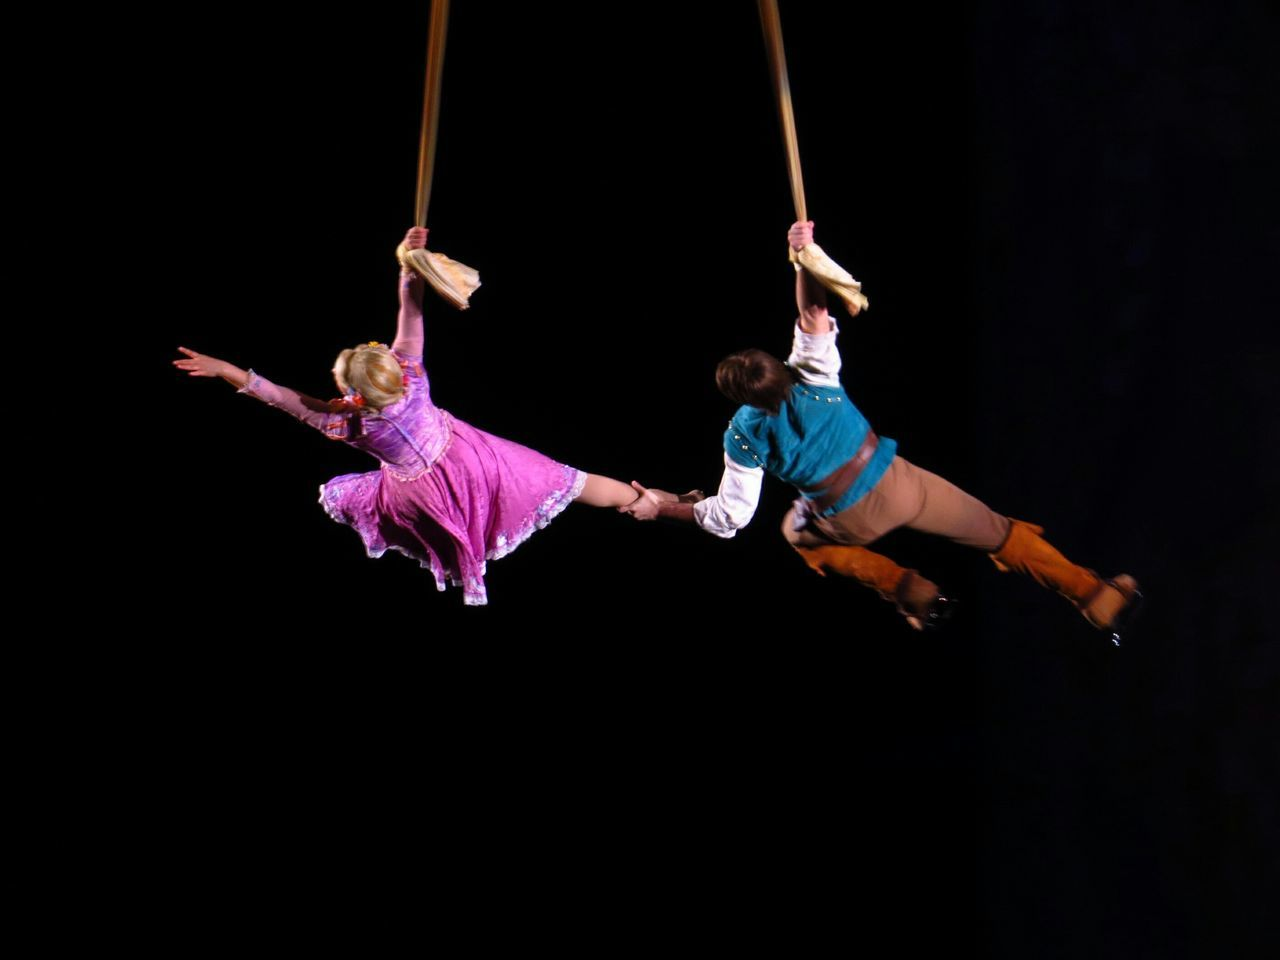 acrobat, full length, performance, skill, togetherness, balance, night, fun, real people, hanging, acrobatic activity, young adult, flexibility, teamwork, young women, black background